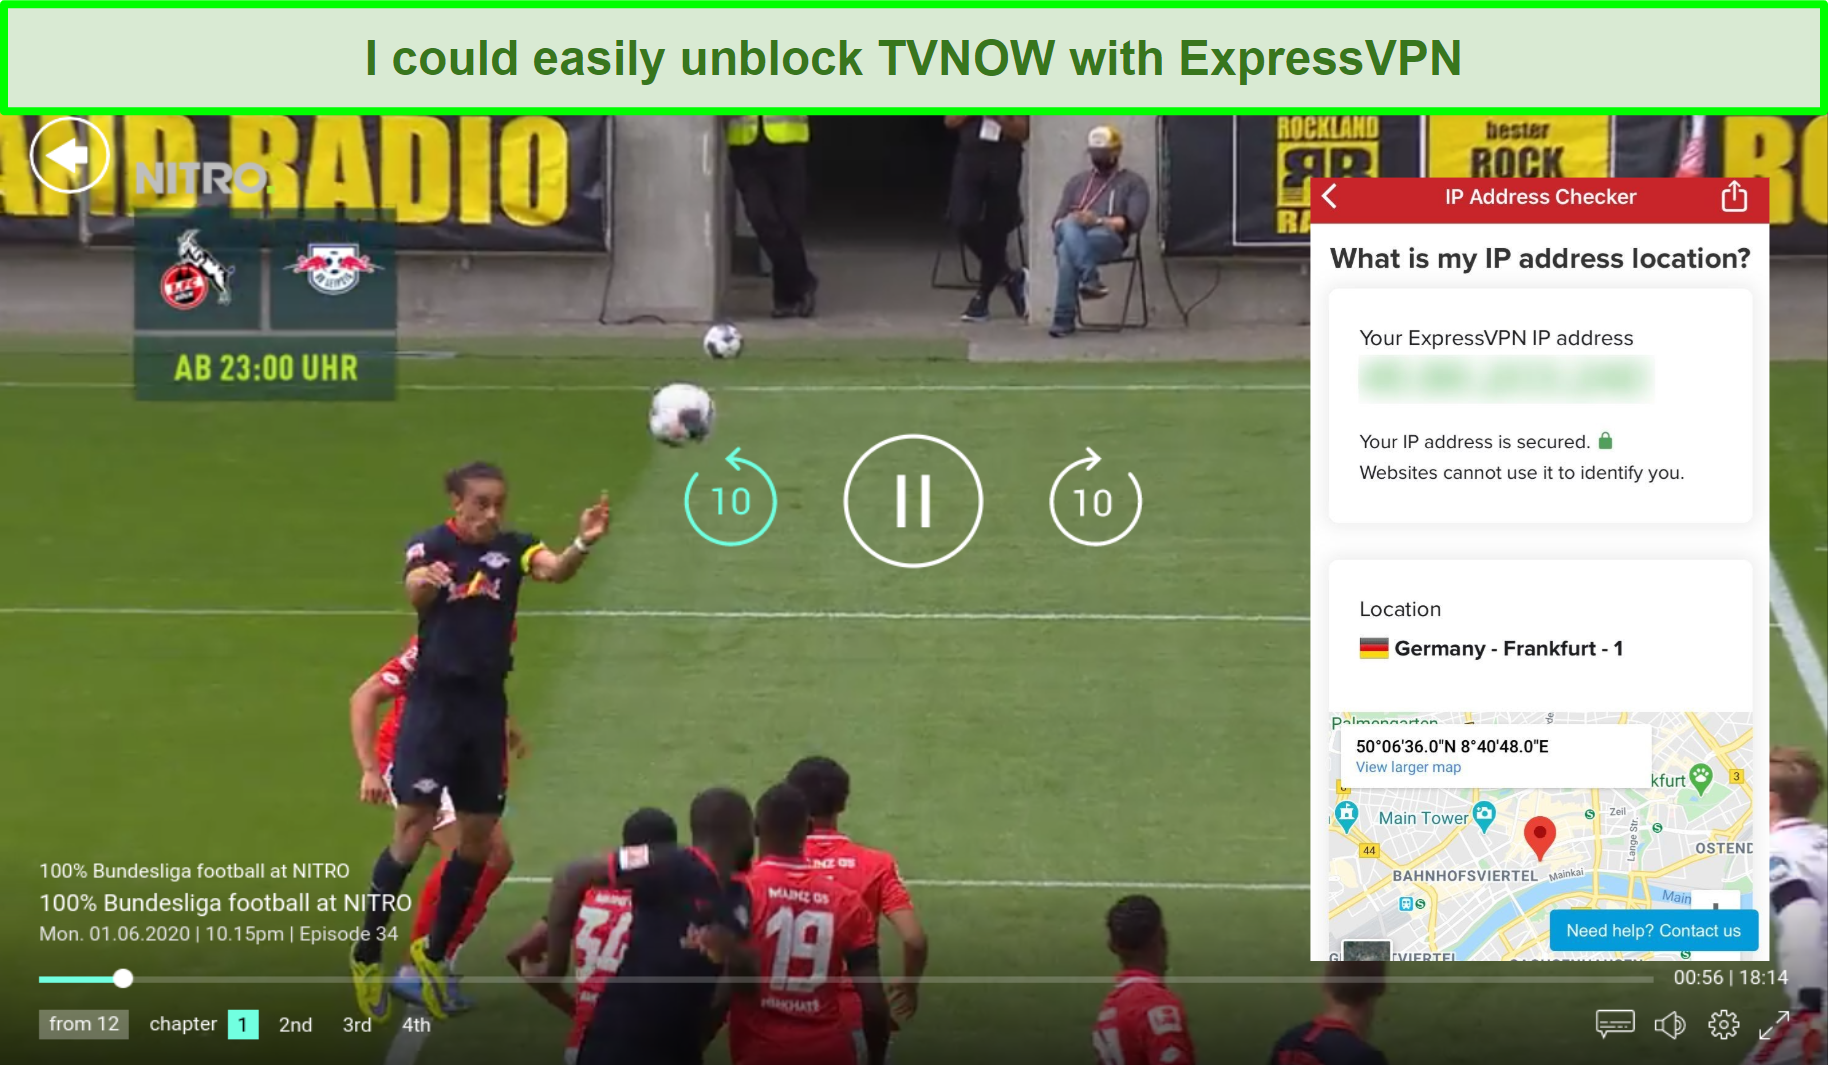 Screenshot of ExpressVPN unblocking 100% Bundesliga Football on TVNOW